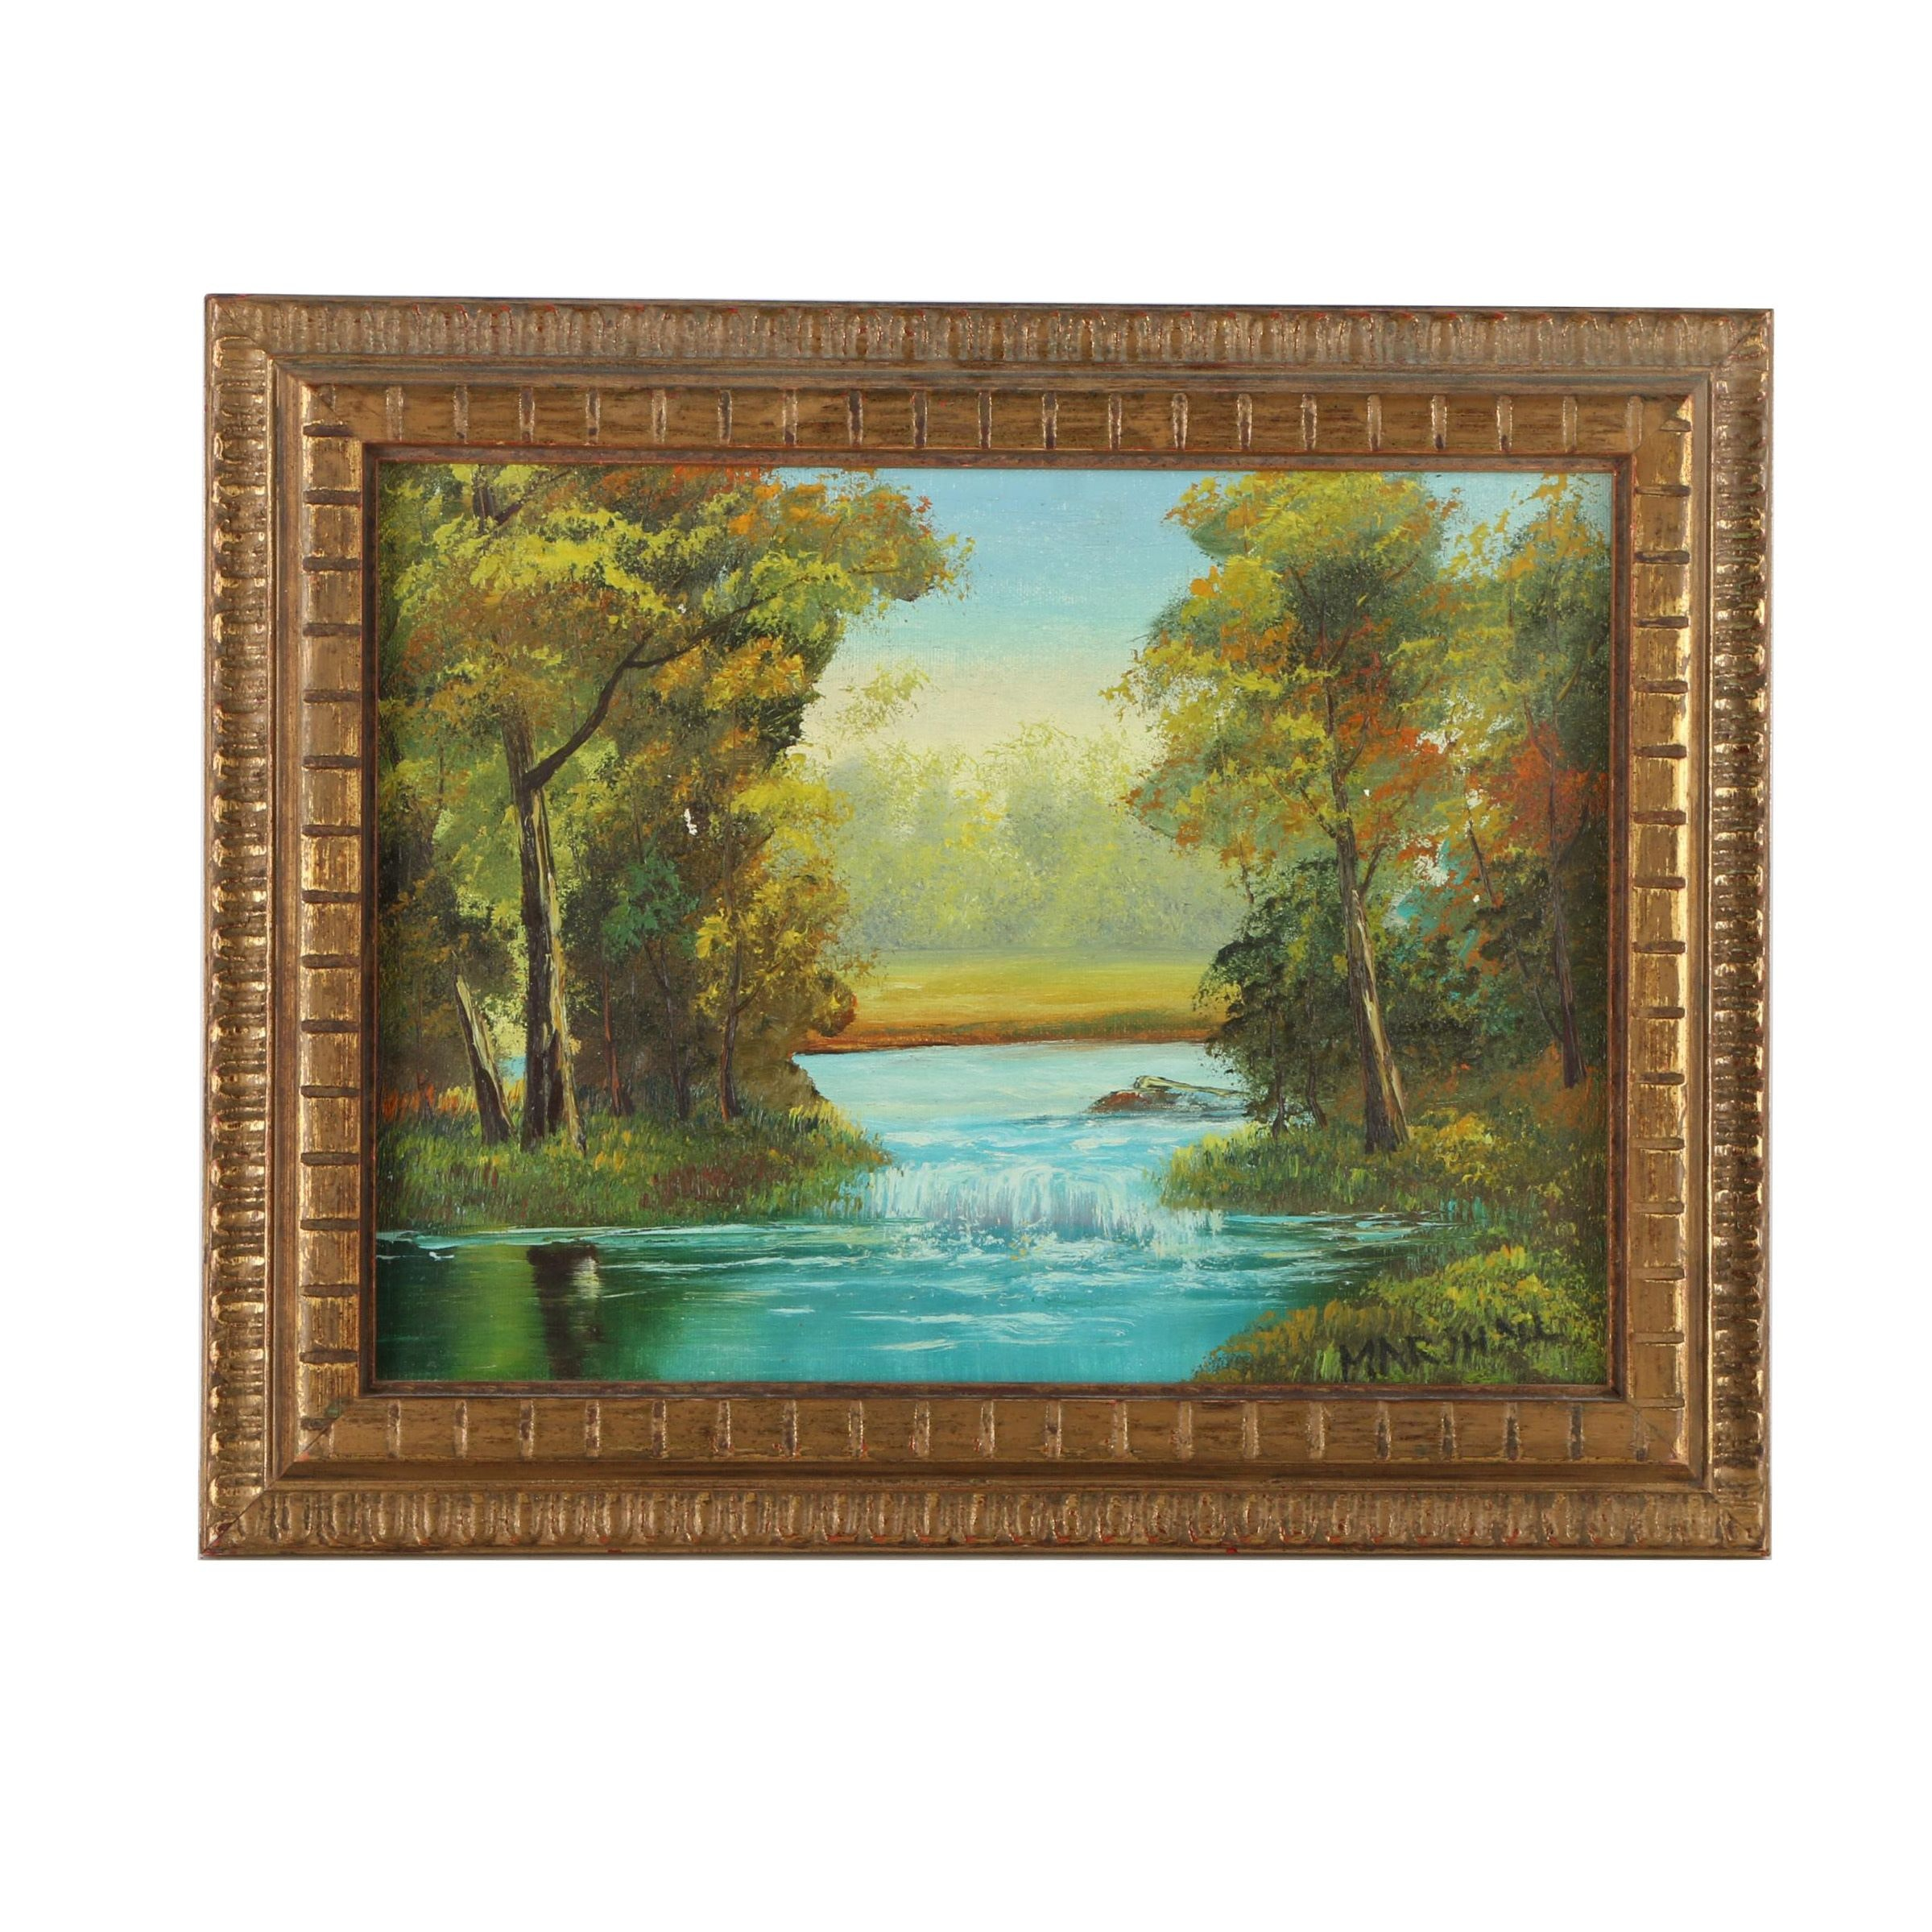 Marshall Oil Painting on Canvas of a Wooded Landscape